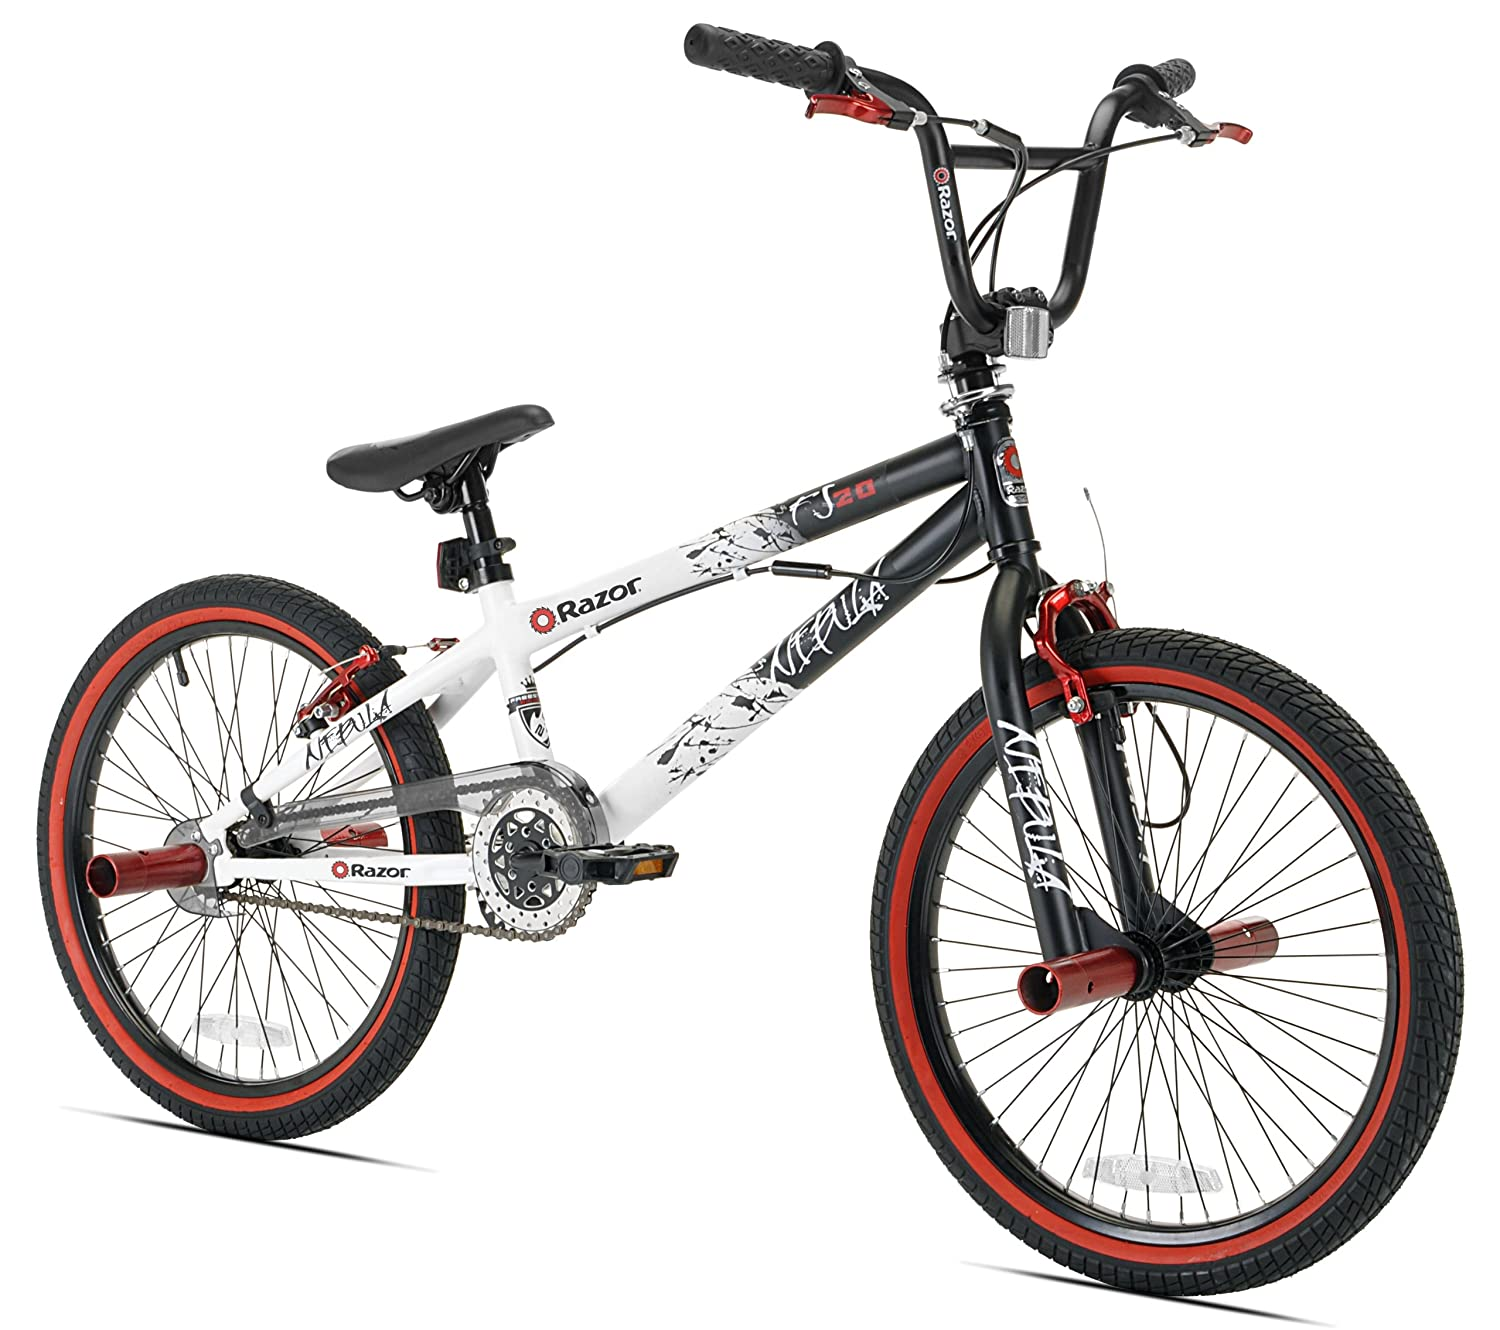 Razor Nebula BMX/Freestyle Bike